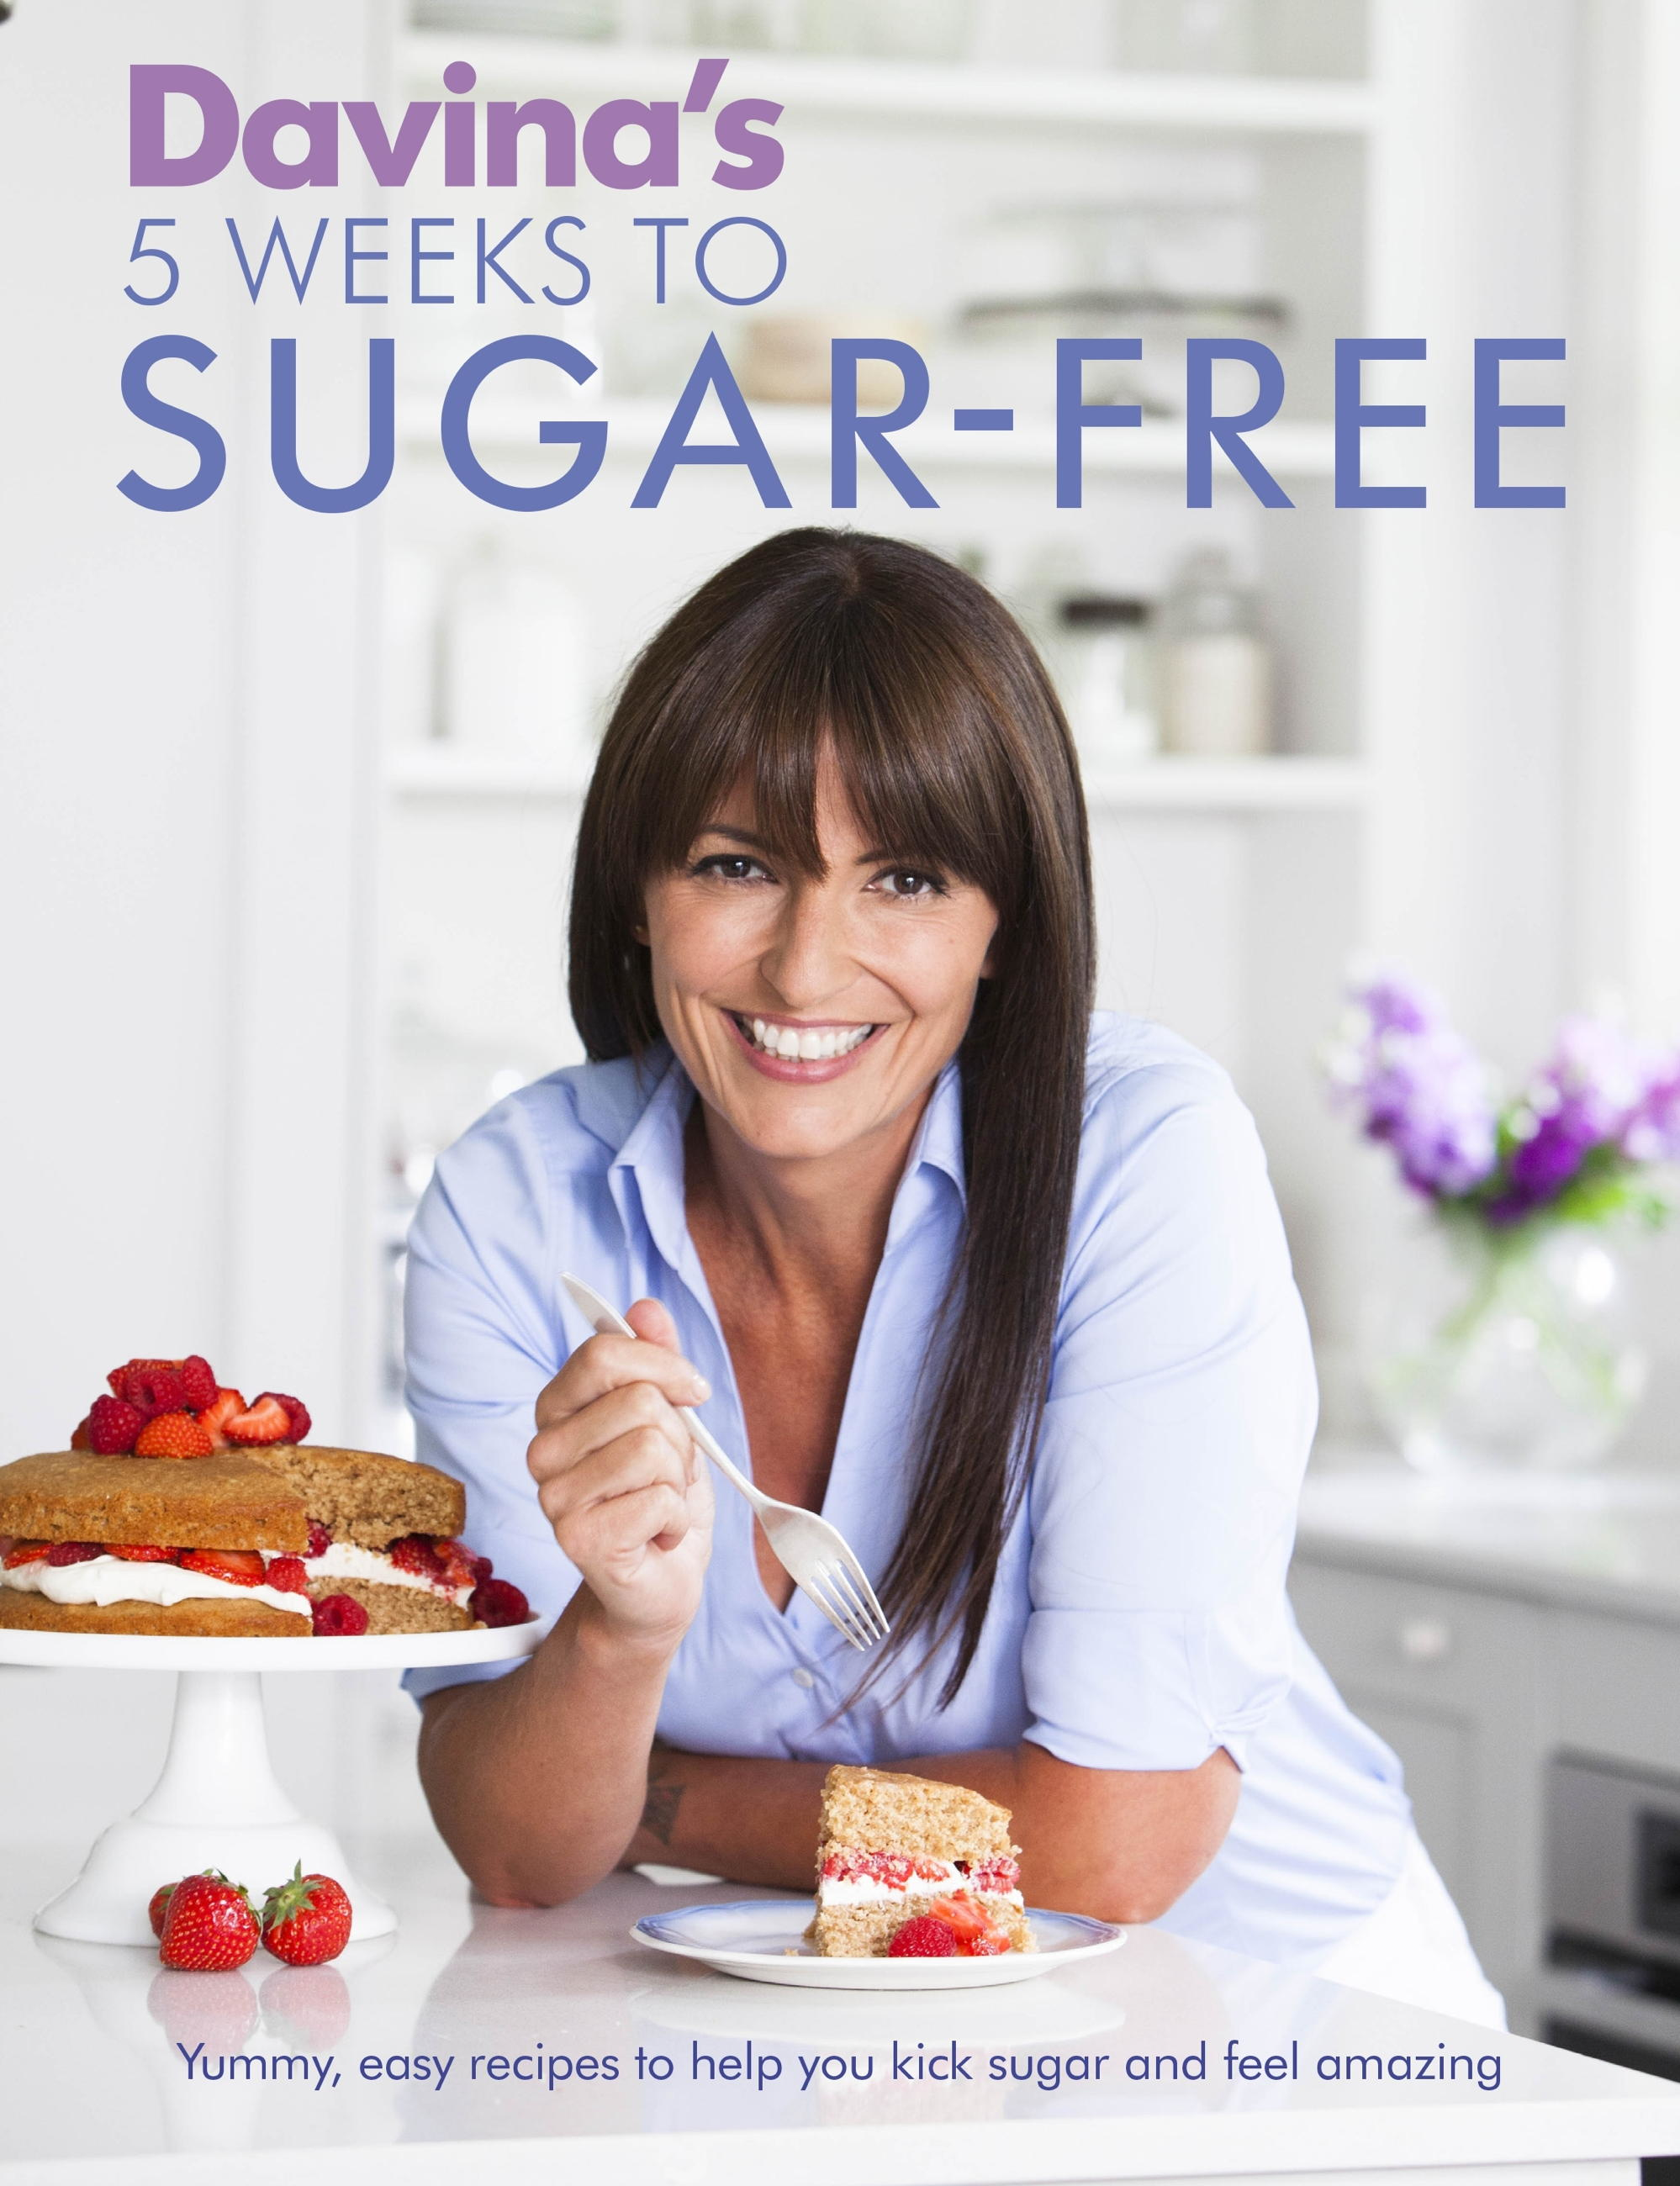 Davina's 5 Weeks to Sugar-Free Yummy,  easy recipes to help you kick sugar and feel amazing